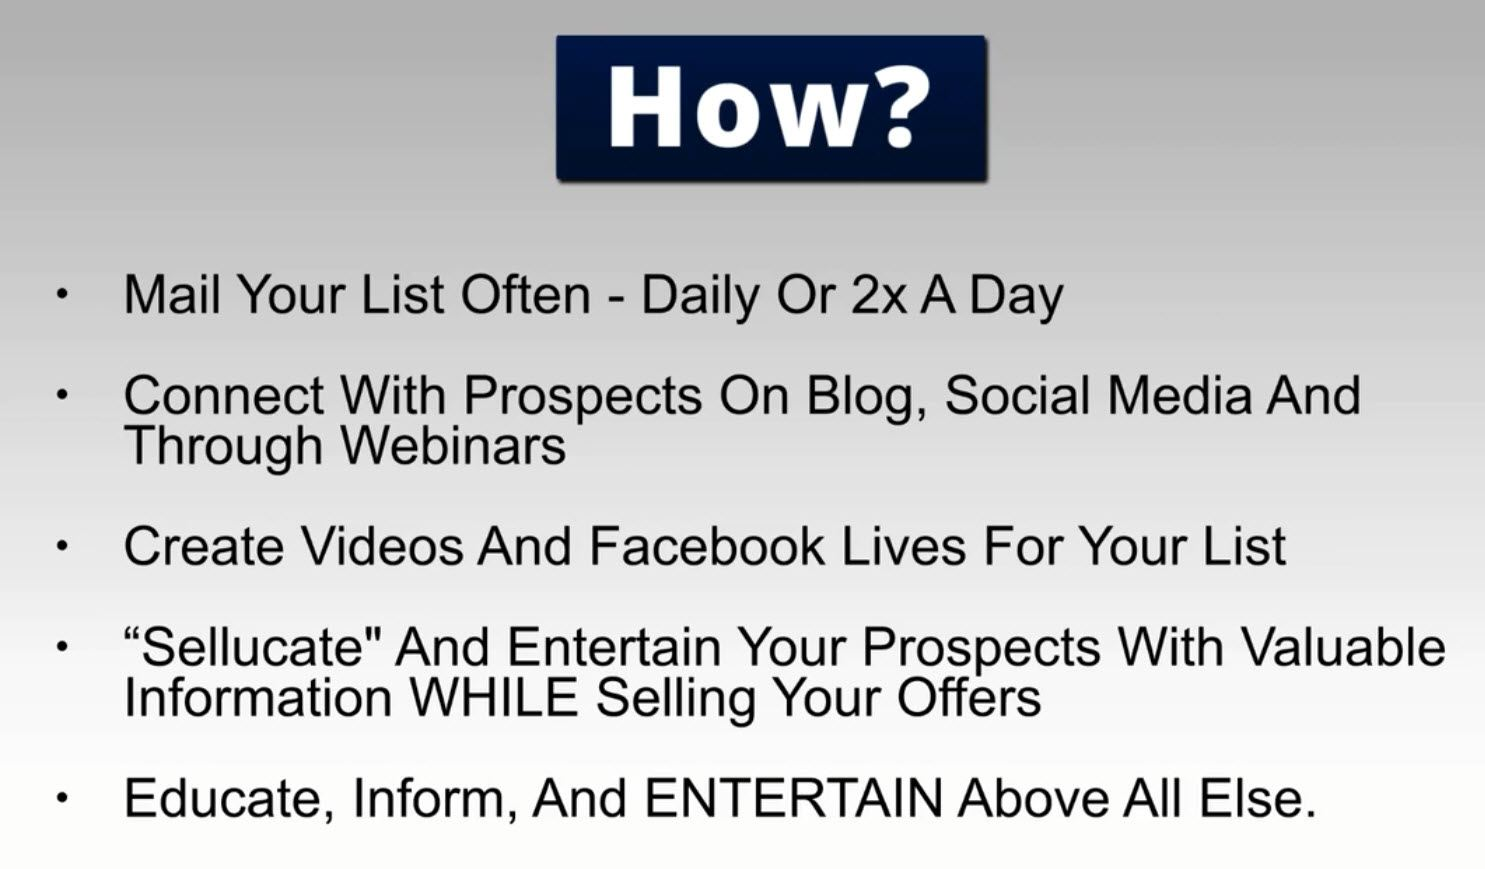 How to generate content for your list